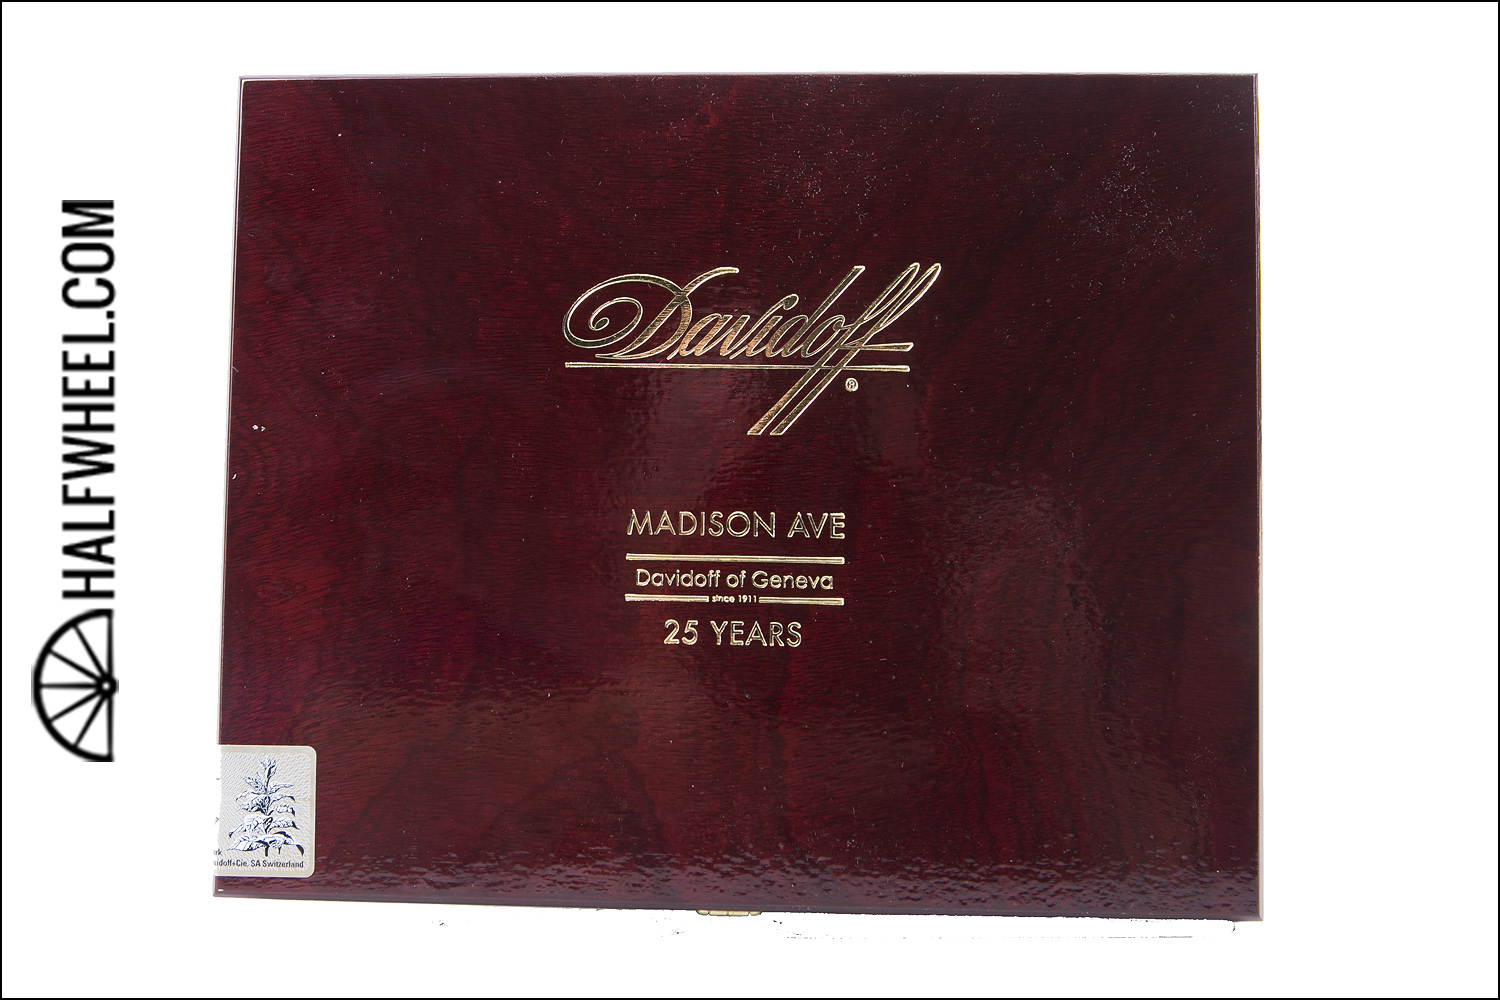 Davidoff Madison Avenue 25th Anniversary Box 1